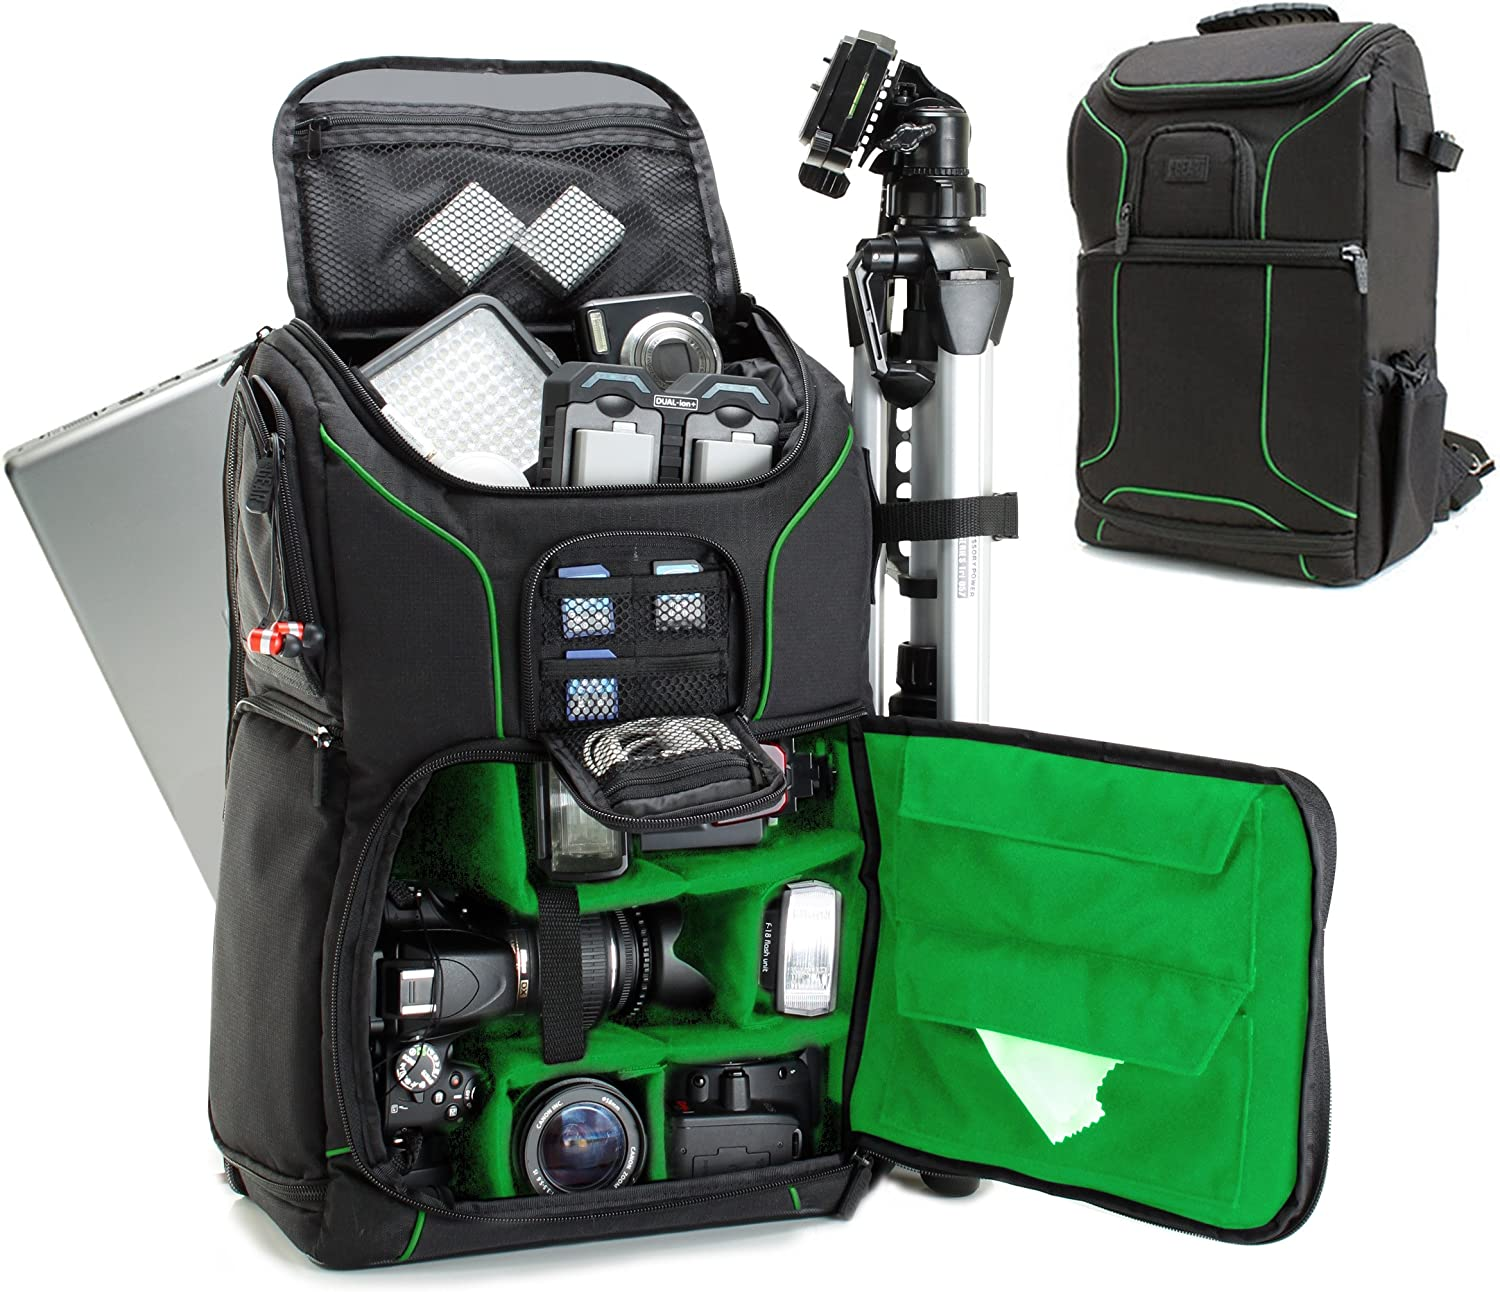 USA GEAR DSLR Camera Backpack Case (Green) - 15.6 inch Laptop Compartment, Padded Custom Dividers, Tripod Holder, Rain Cover, Long-Lasting Durability and Storage Pockets - Compatible with Many DSLRs